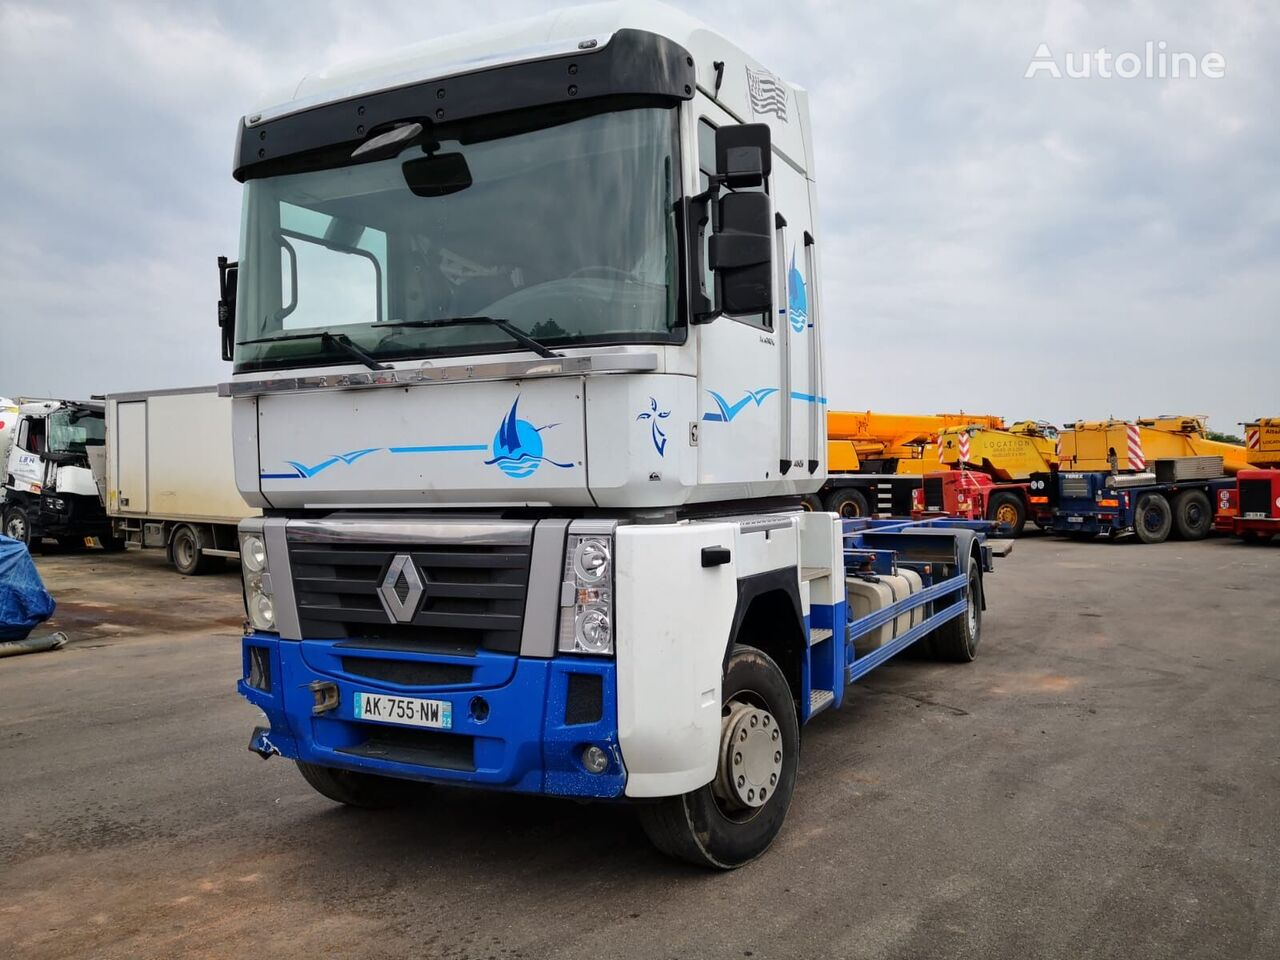 damaged RENAULT MAGNUM 480DXI*ACCIDENTE*DAMAGED*UNFALL* container chassis